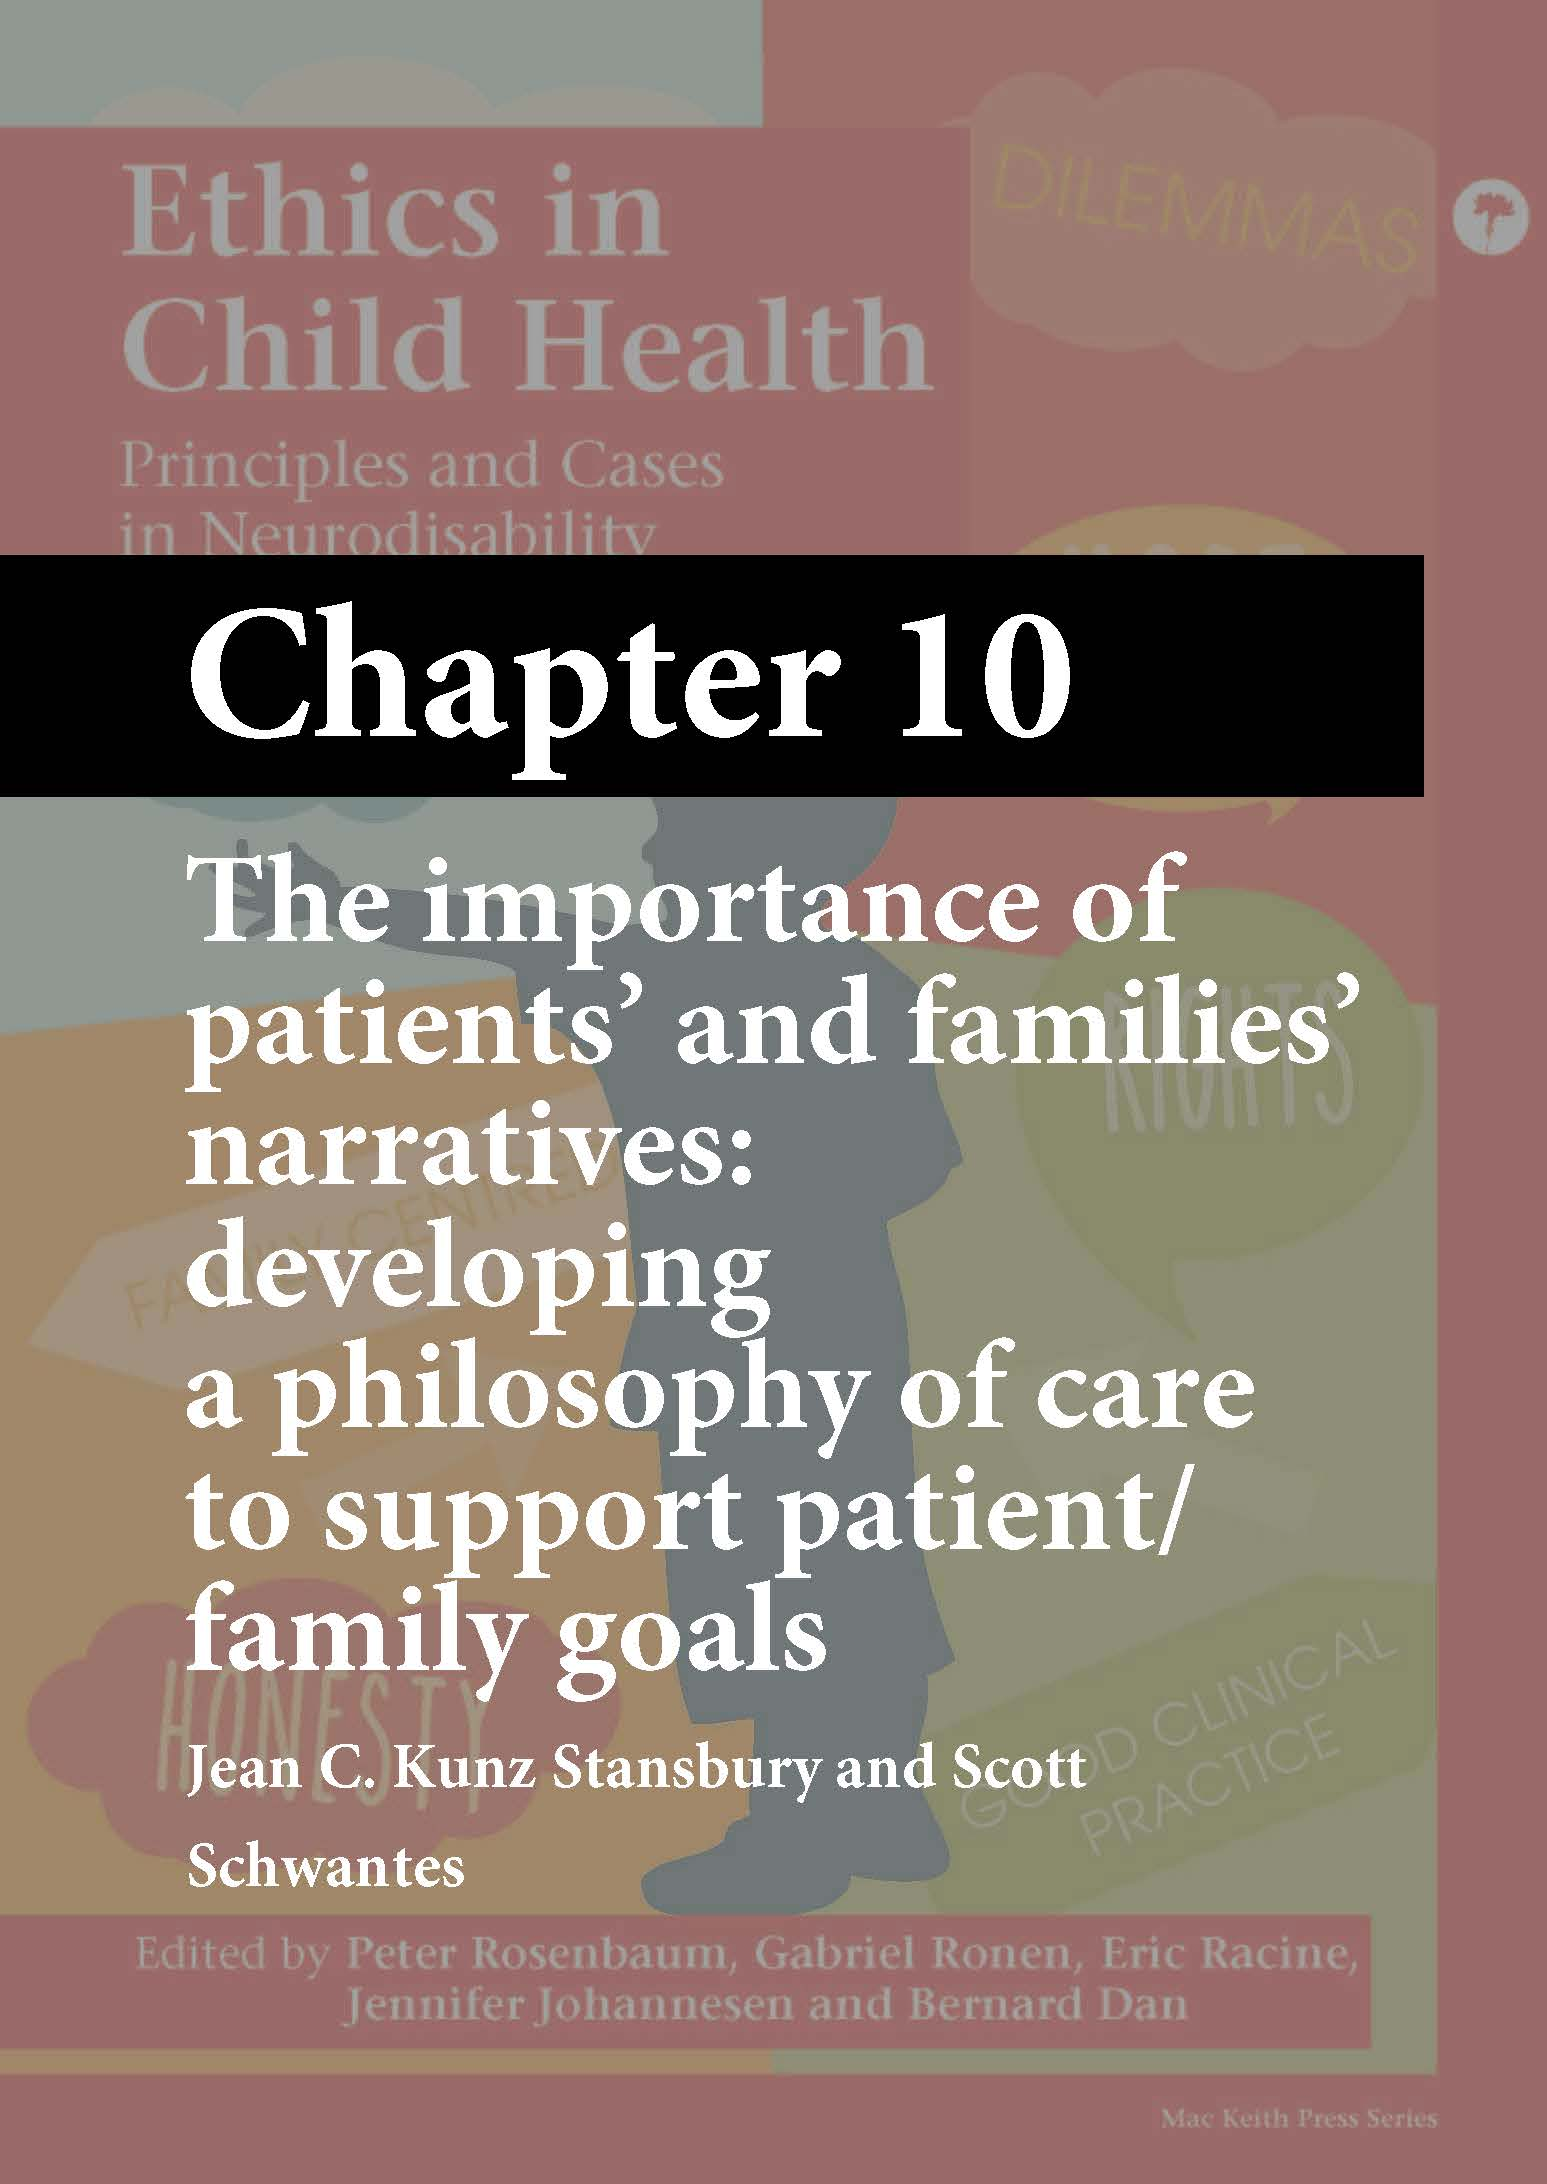 Ethics in Child Health, Rosenbaum, Chapter 10 cover